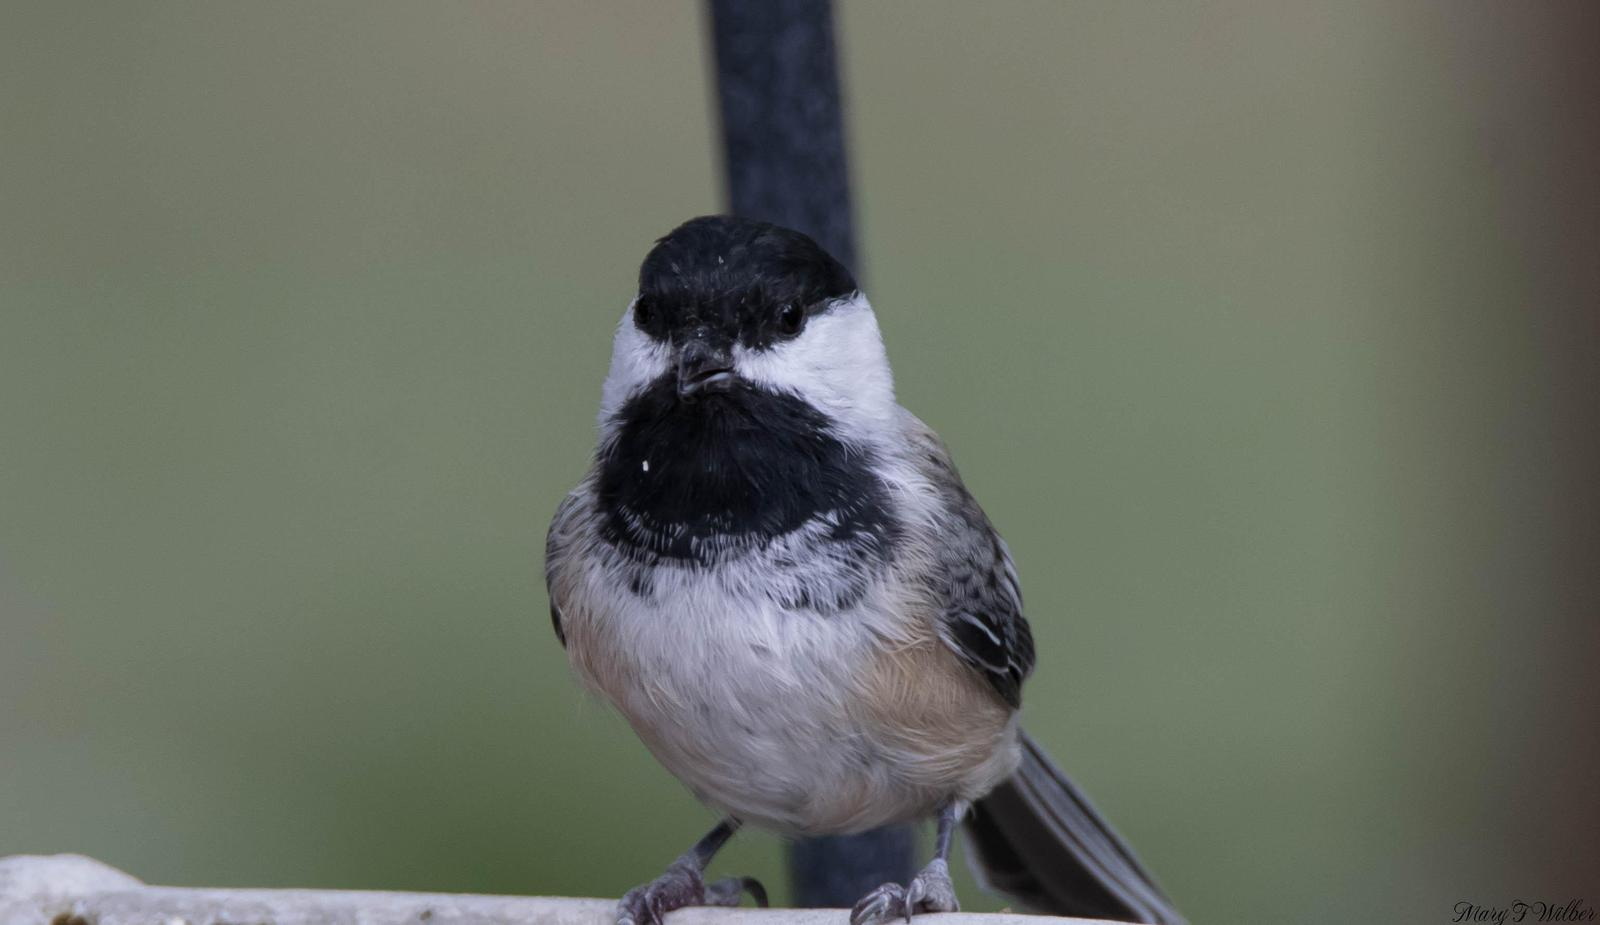 chickadee sp. Photo by Mary Wilber